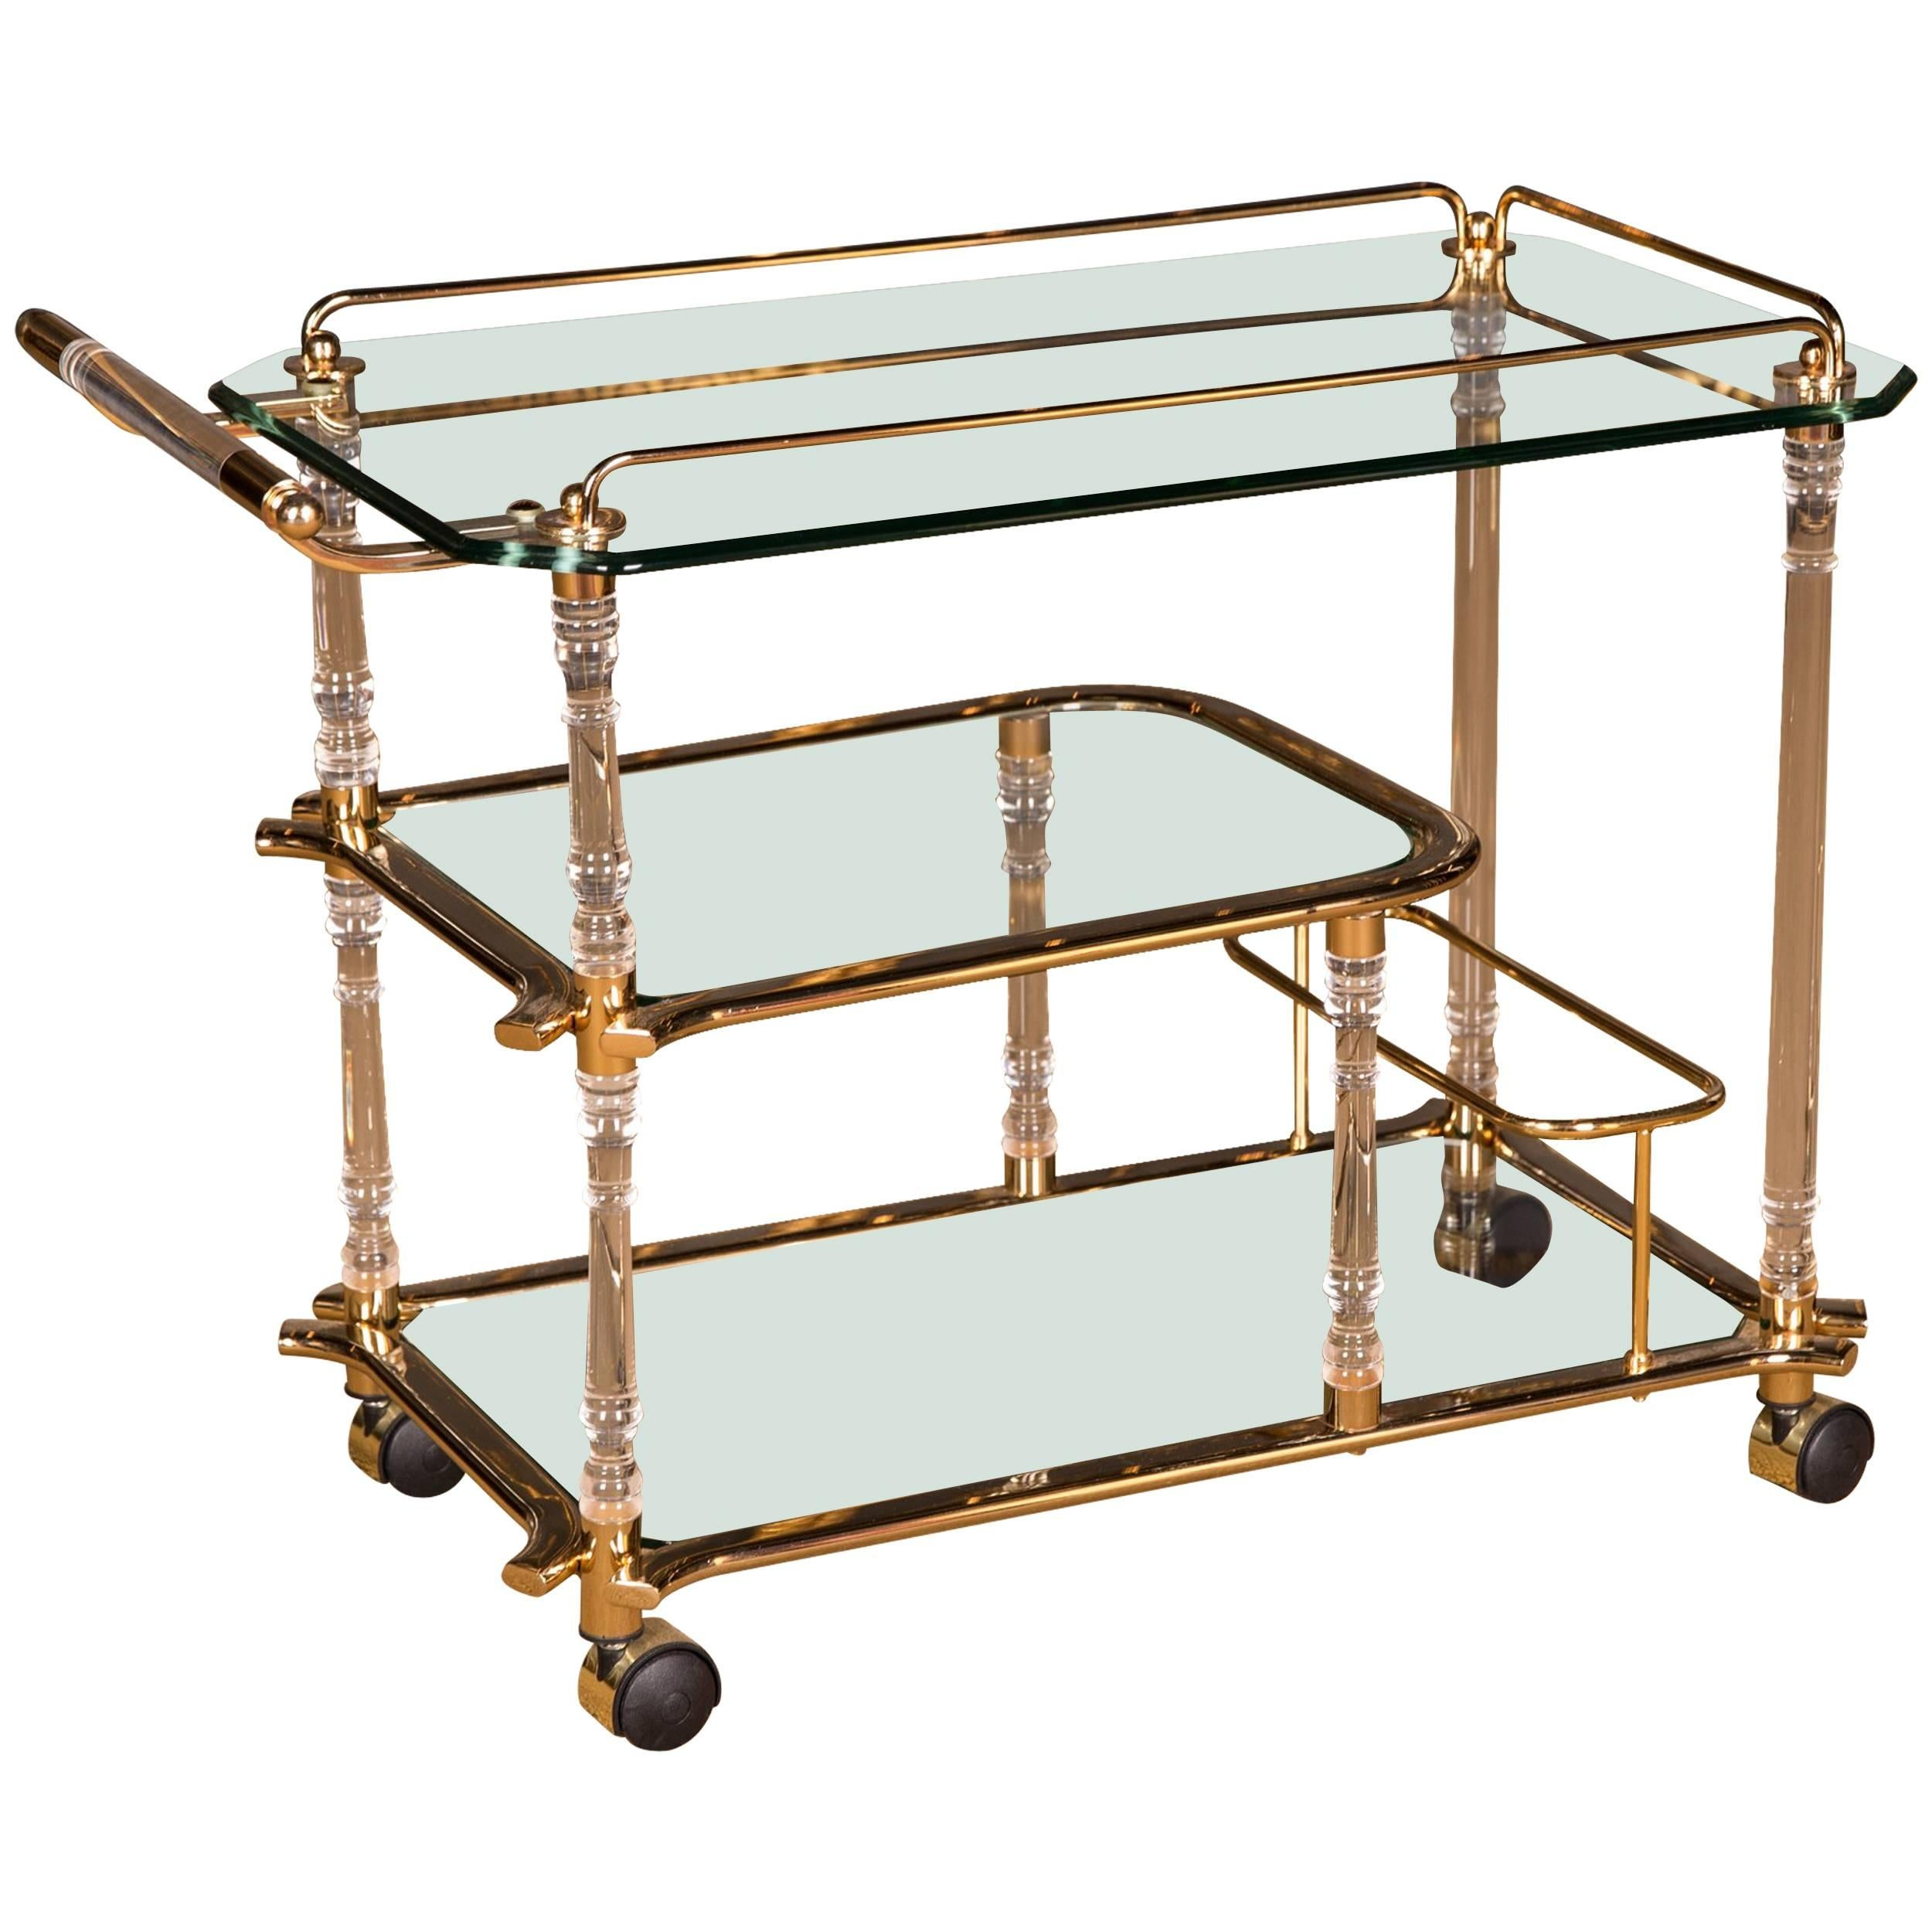 High Quality Acrylic Serving Tray Table With Brass